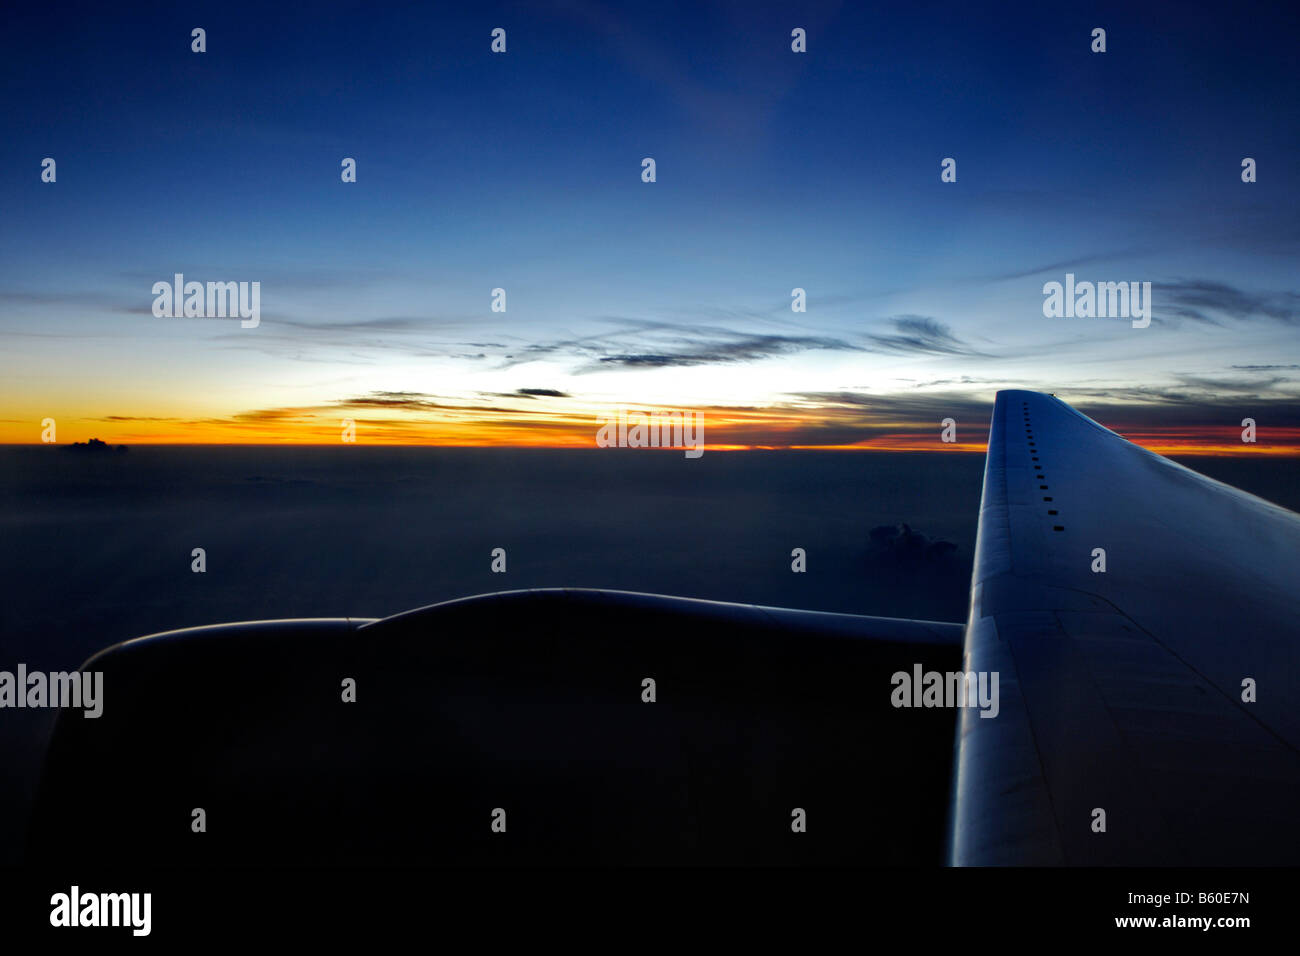 Sunset, view from window of an airplane near Singapore, Singapore, Asia - Stock Image